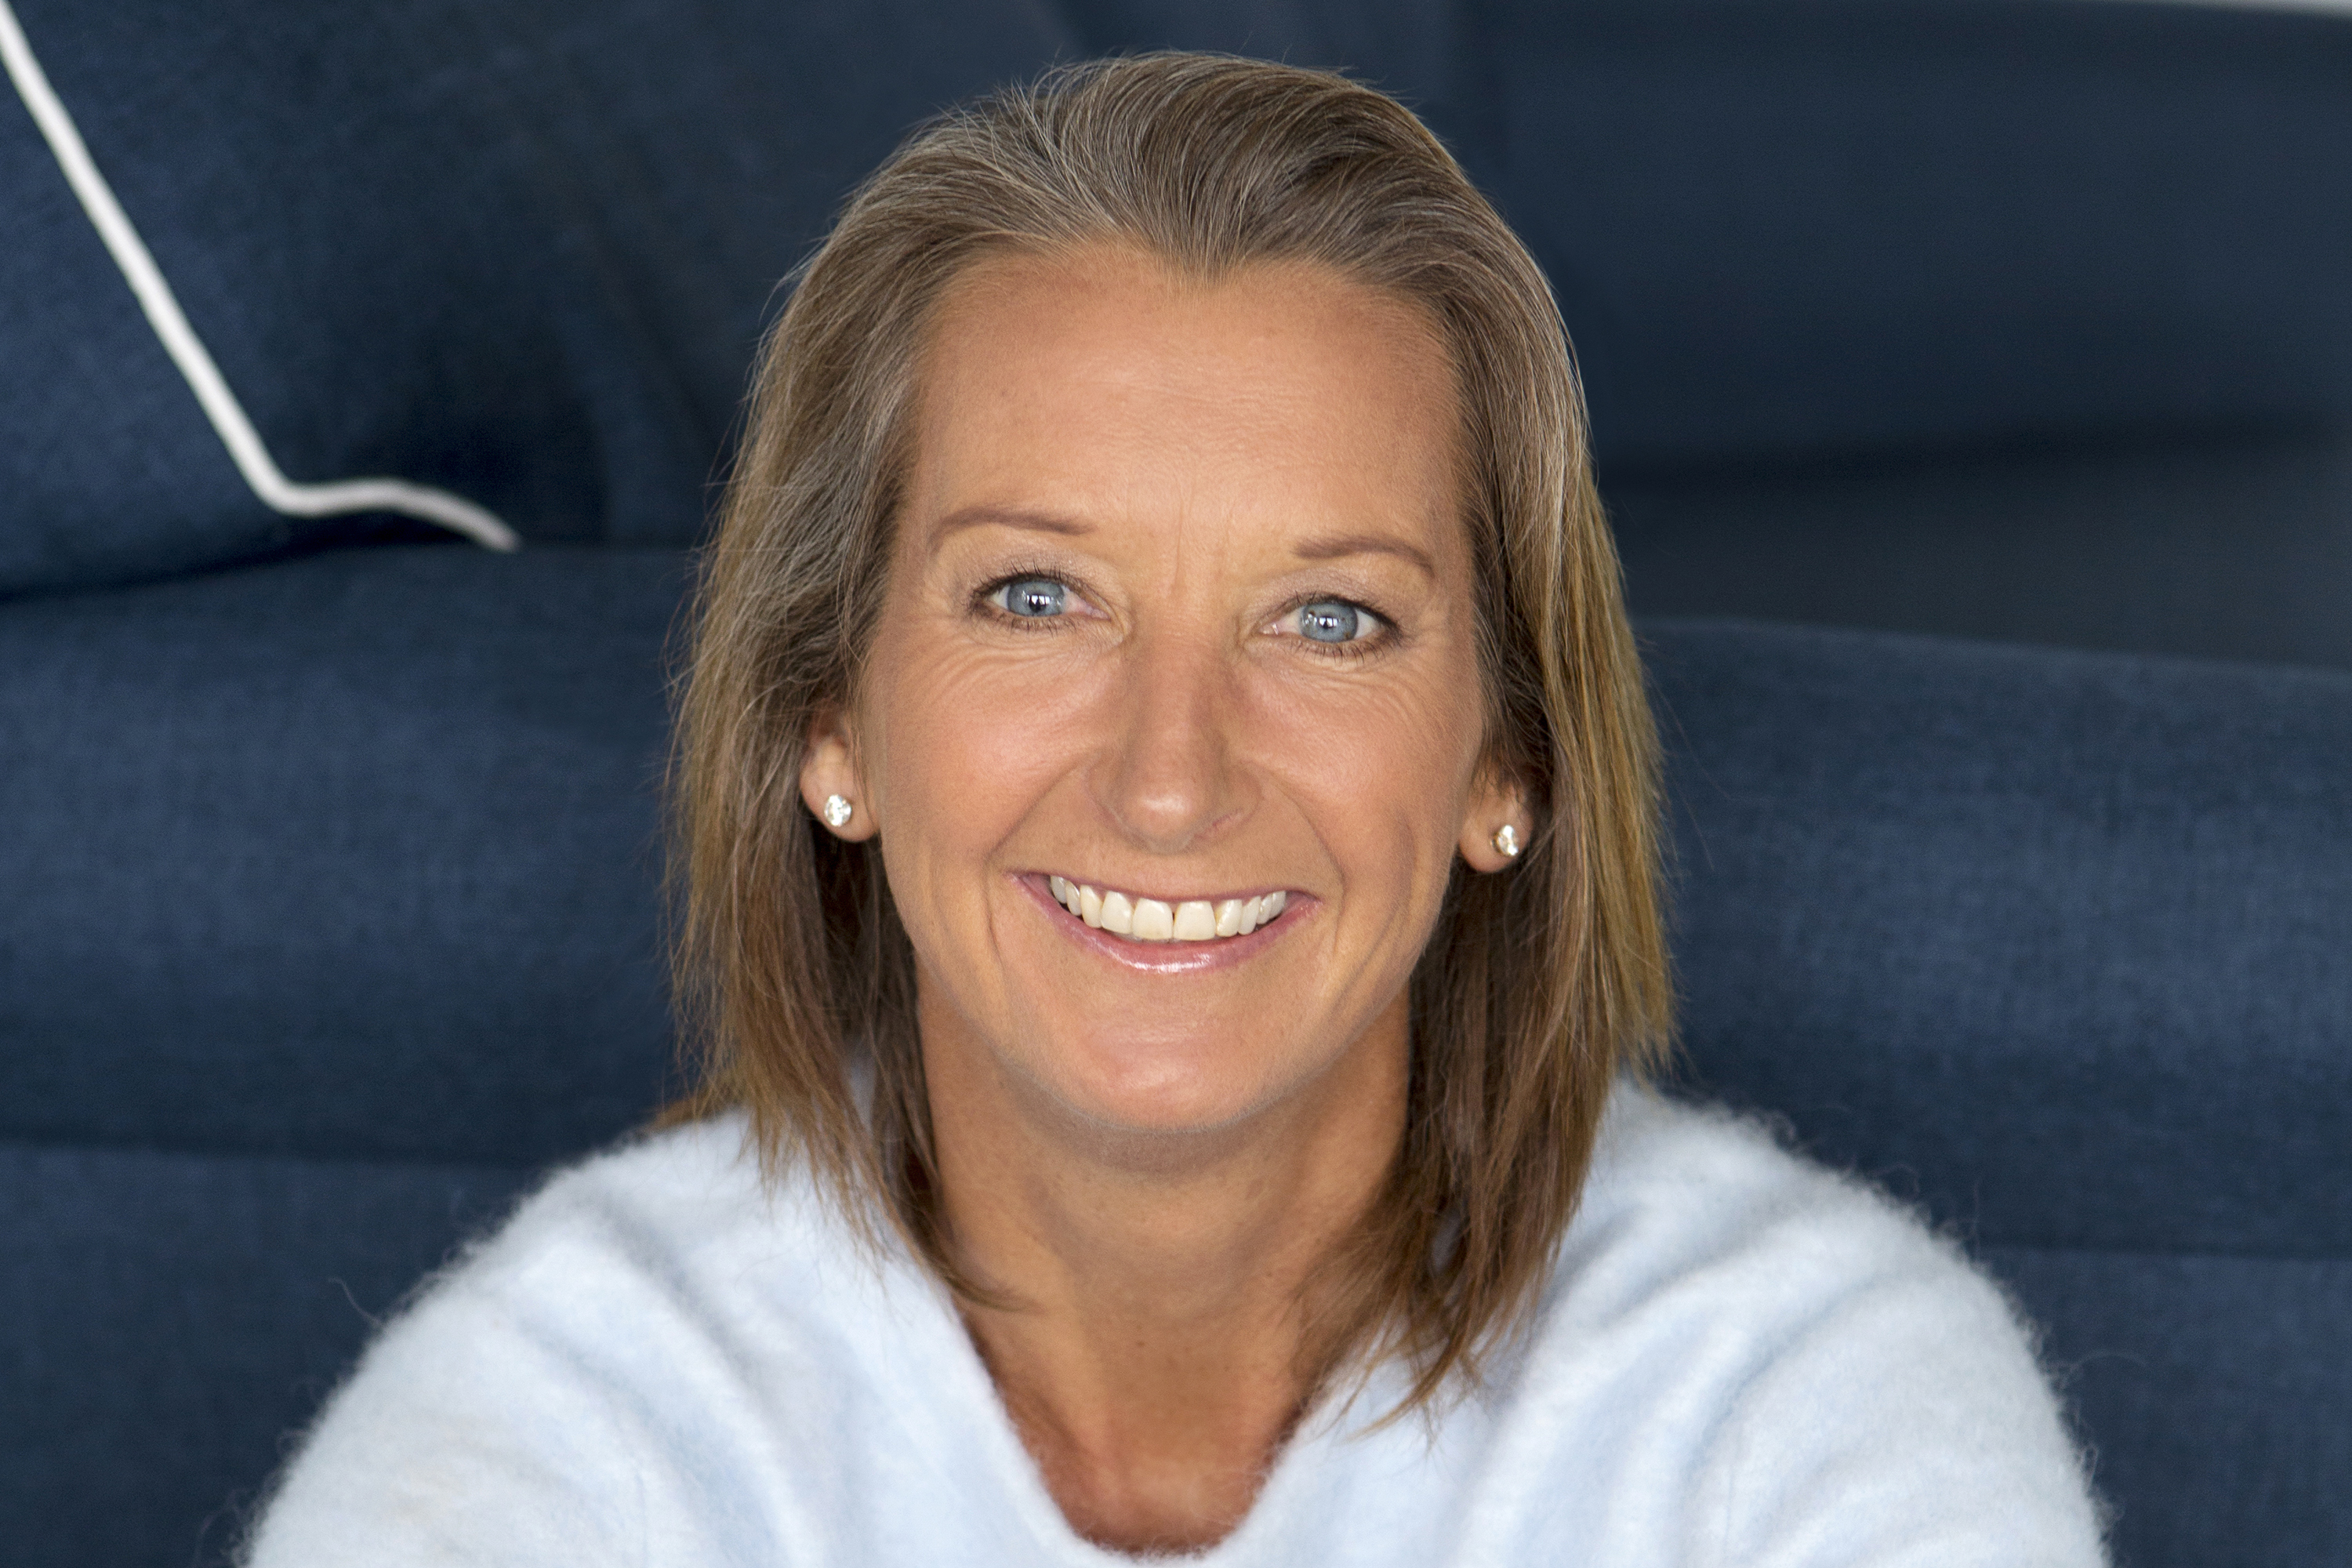 Speakers related to Les Burdett: Layne Beachley